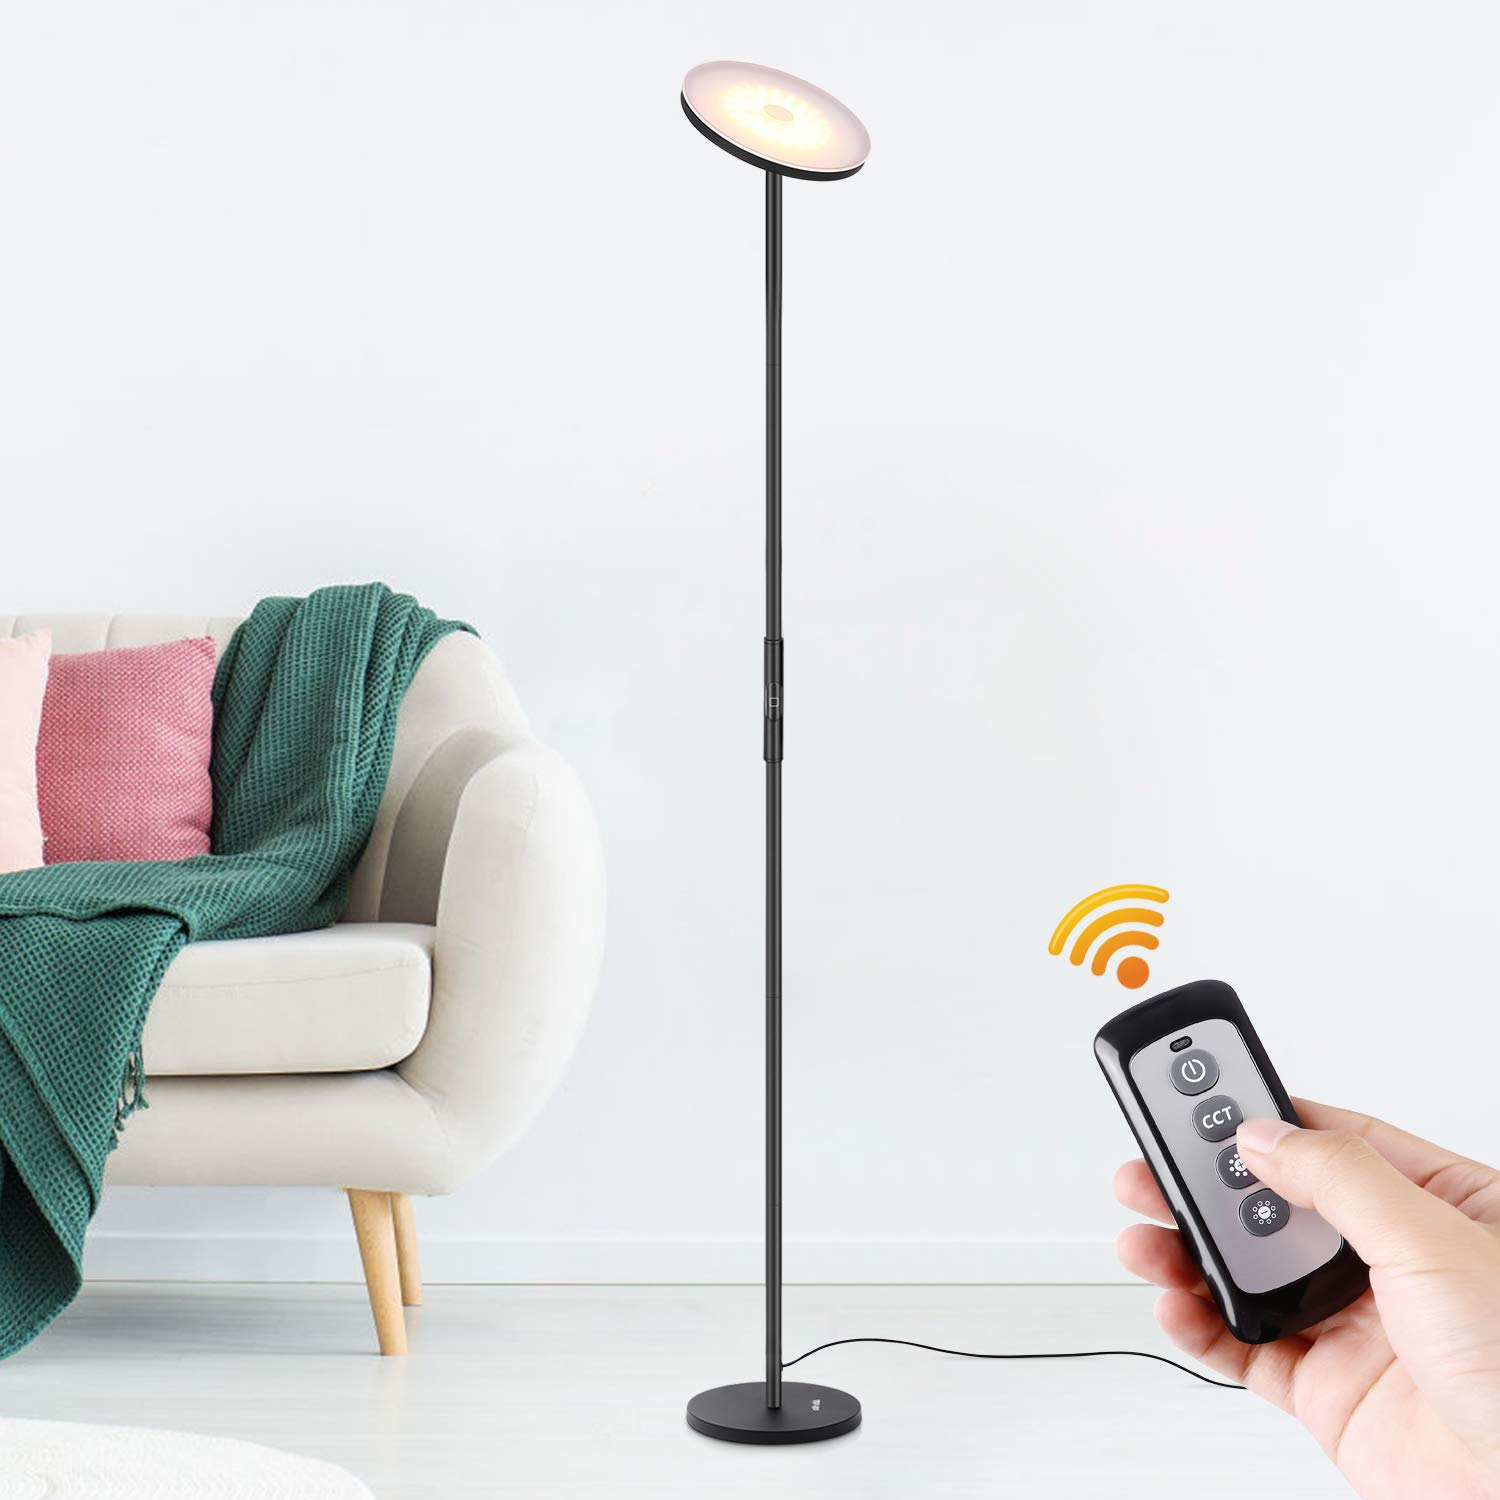 Albrillo LED Torchiere Floor Lamp with Remote and Touch Control, Dimmable Standing Uplight Lamp for Living Room Bedroom Office Reading, Black by Albrillo